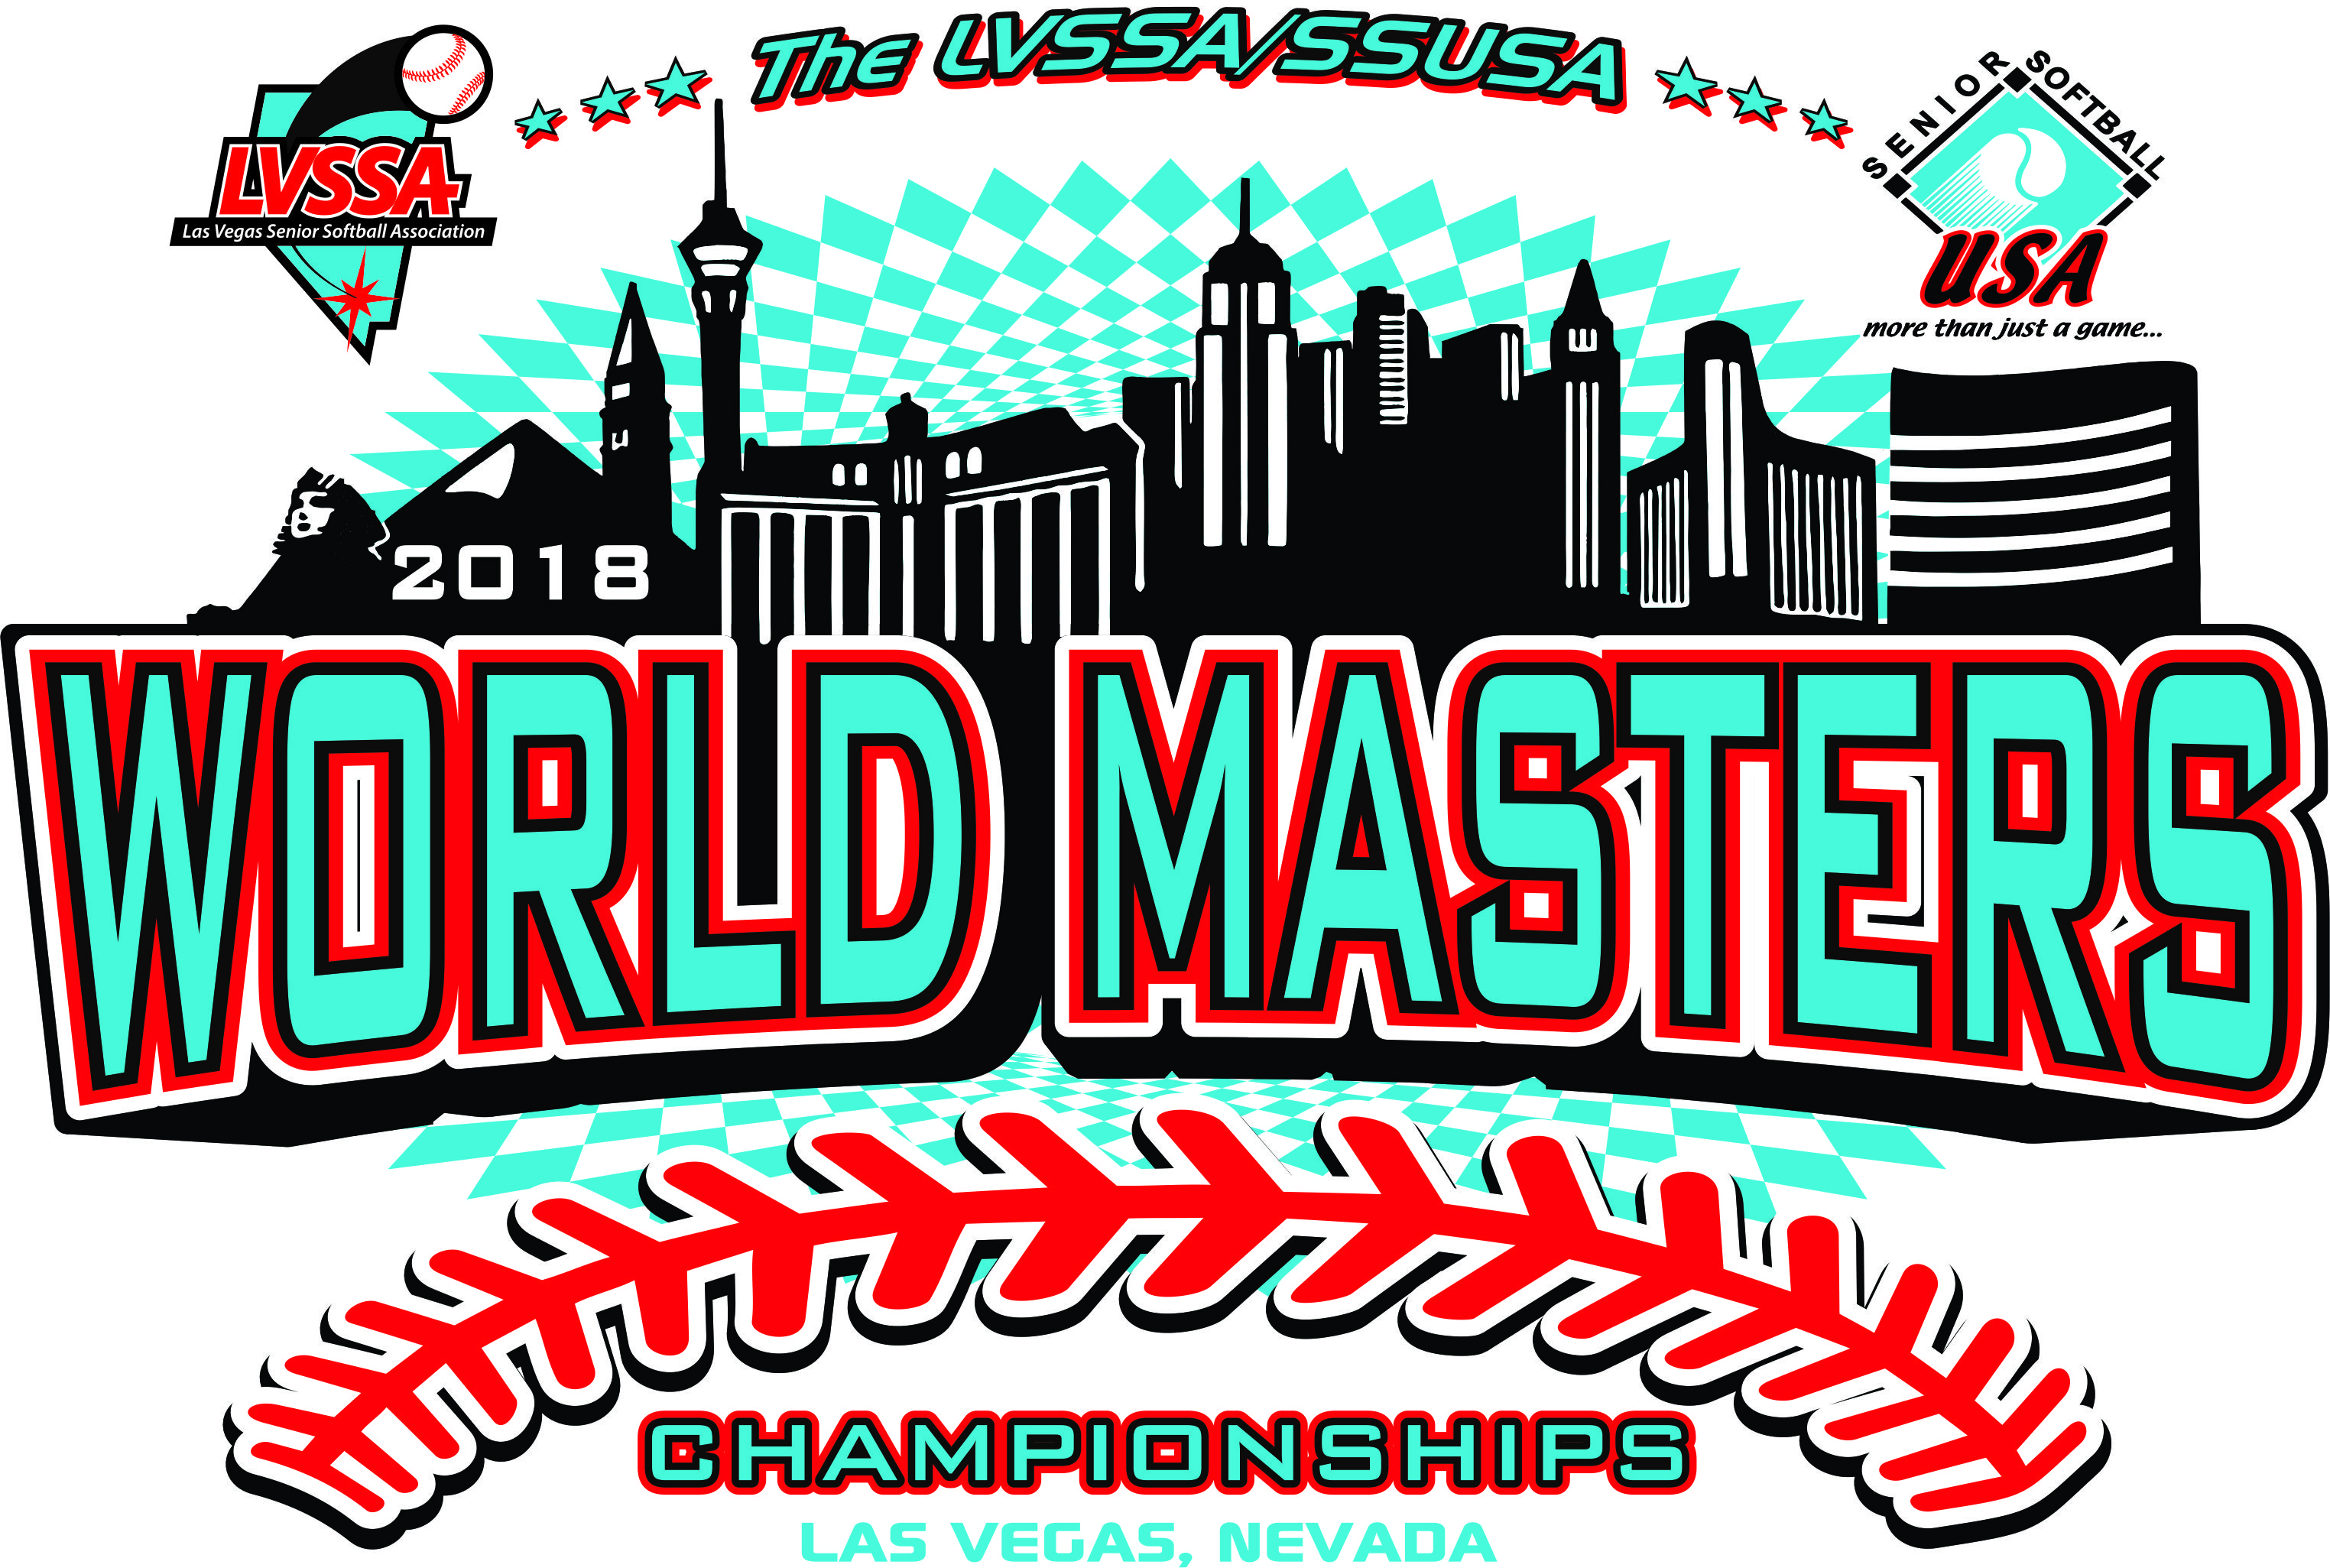 138 Teams Close Out Record Breaking LVSSA/SSUSA World Masters